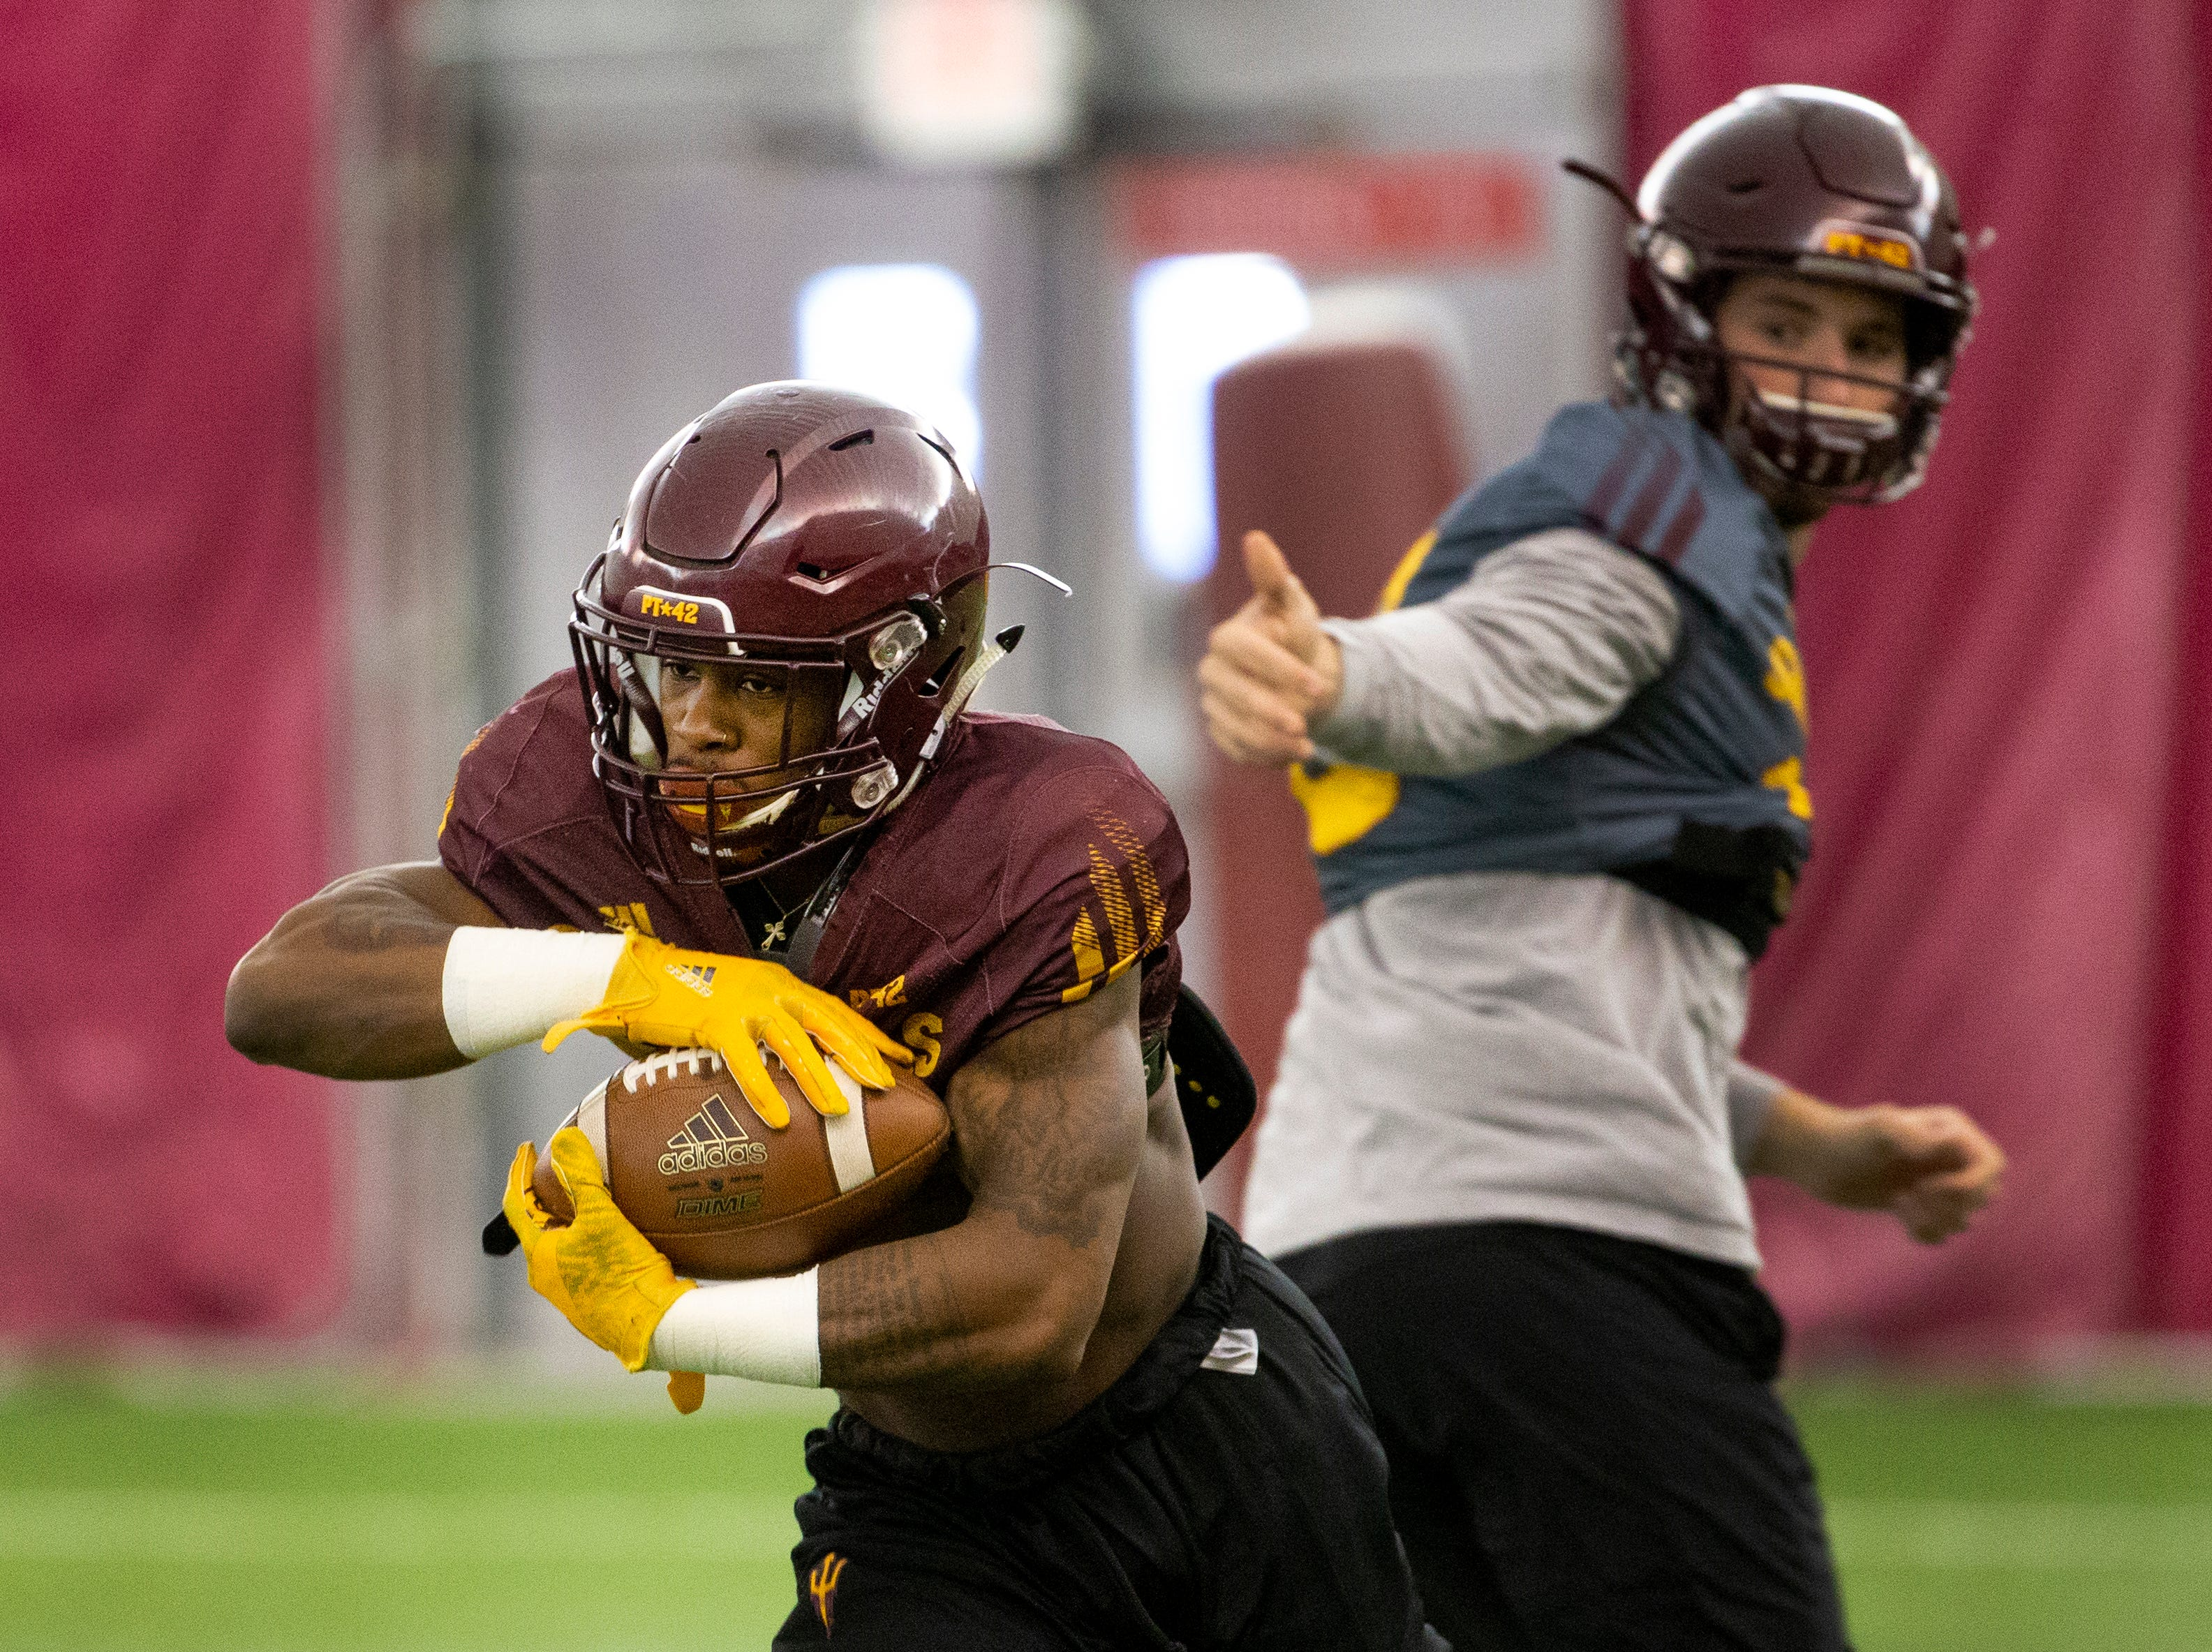 Running back Isaiah Floyd takes the ball from quarterback Langston Frederick during a drill at ASU spring football practice in the Verde Dickey Dome in Tempe on February 21.